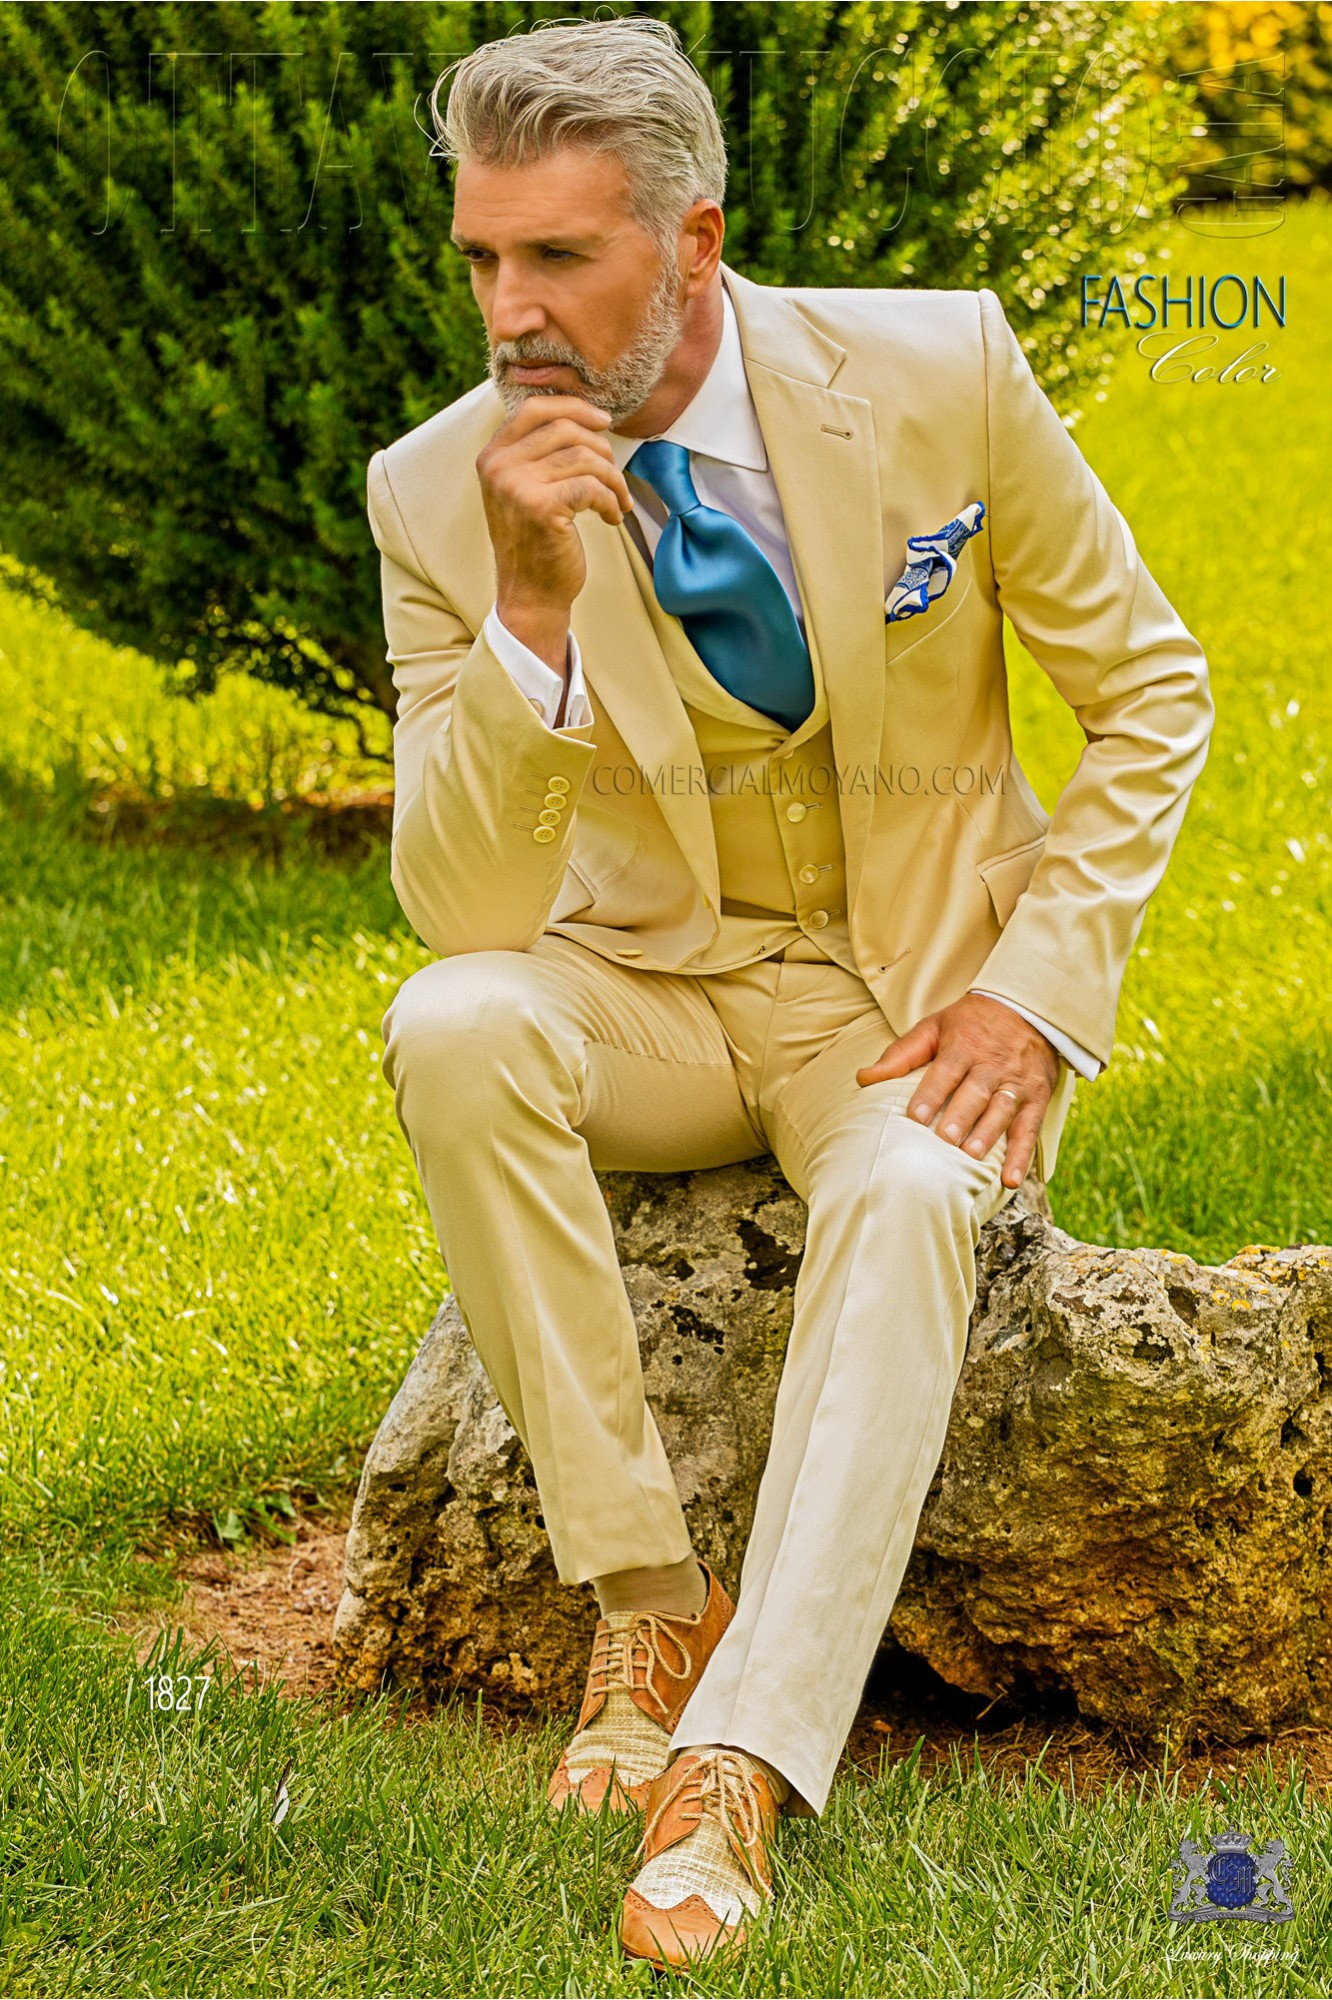 Italian bespoke pure cotton satin beige suit model 1827 Ottavio Nuccio Gala